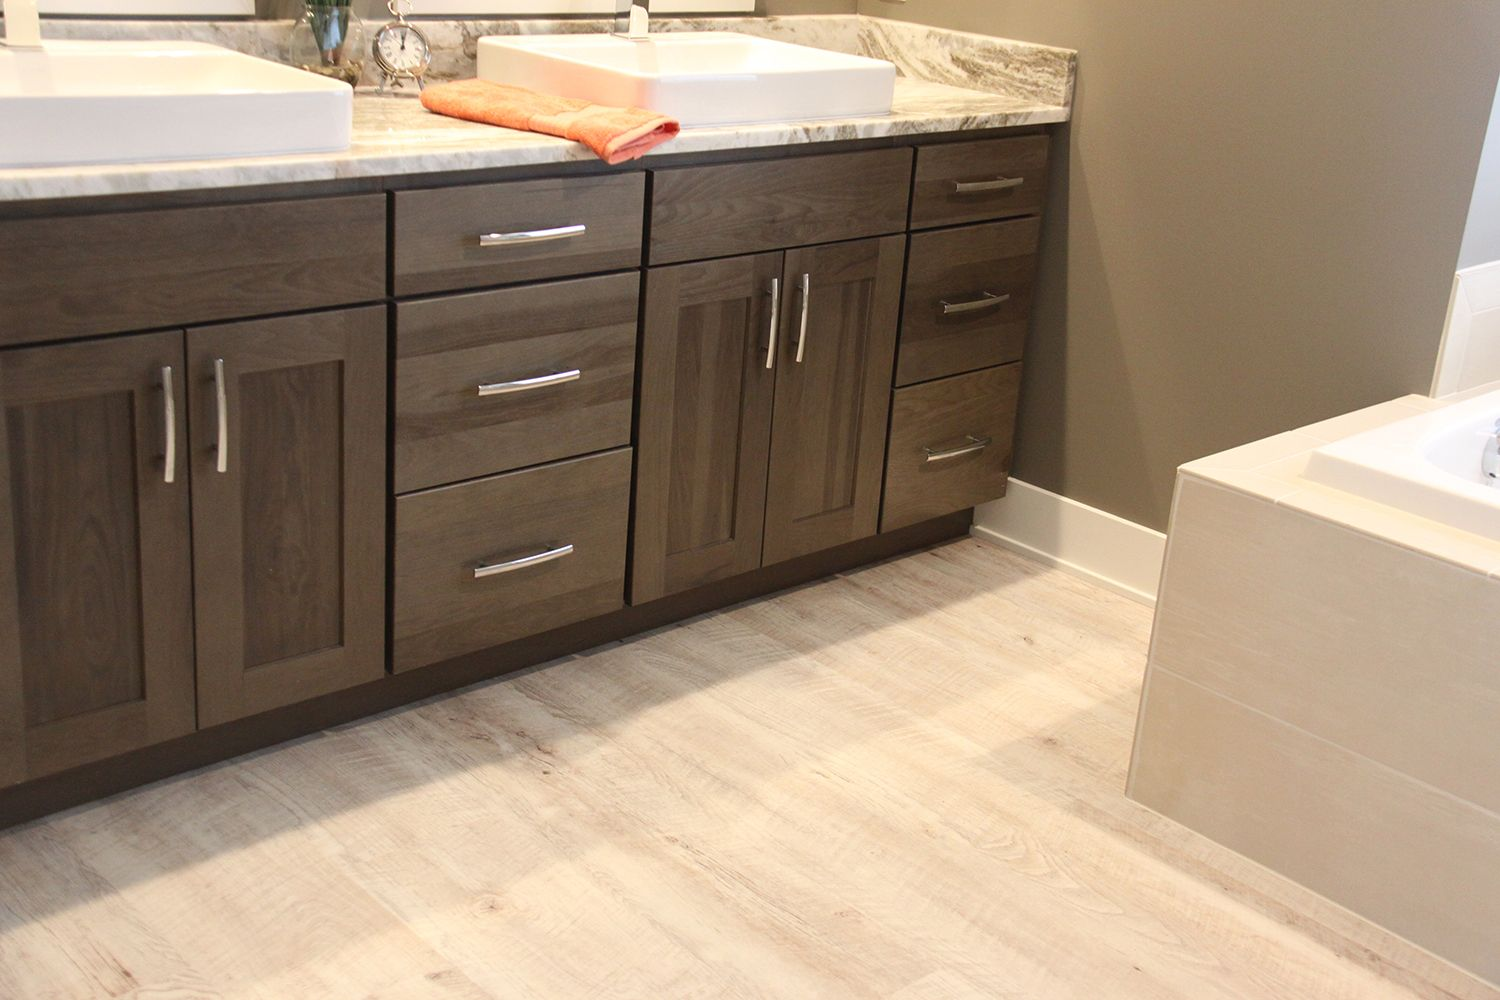 Luxury Vinyl Plank Flooring With Dark Shaker Cabinets In Bathroom   Degraaf  Interiors